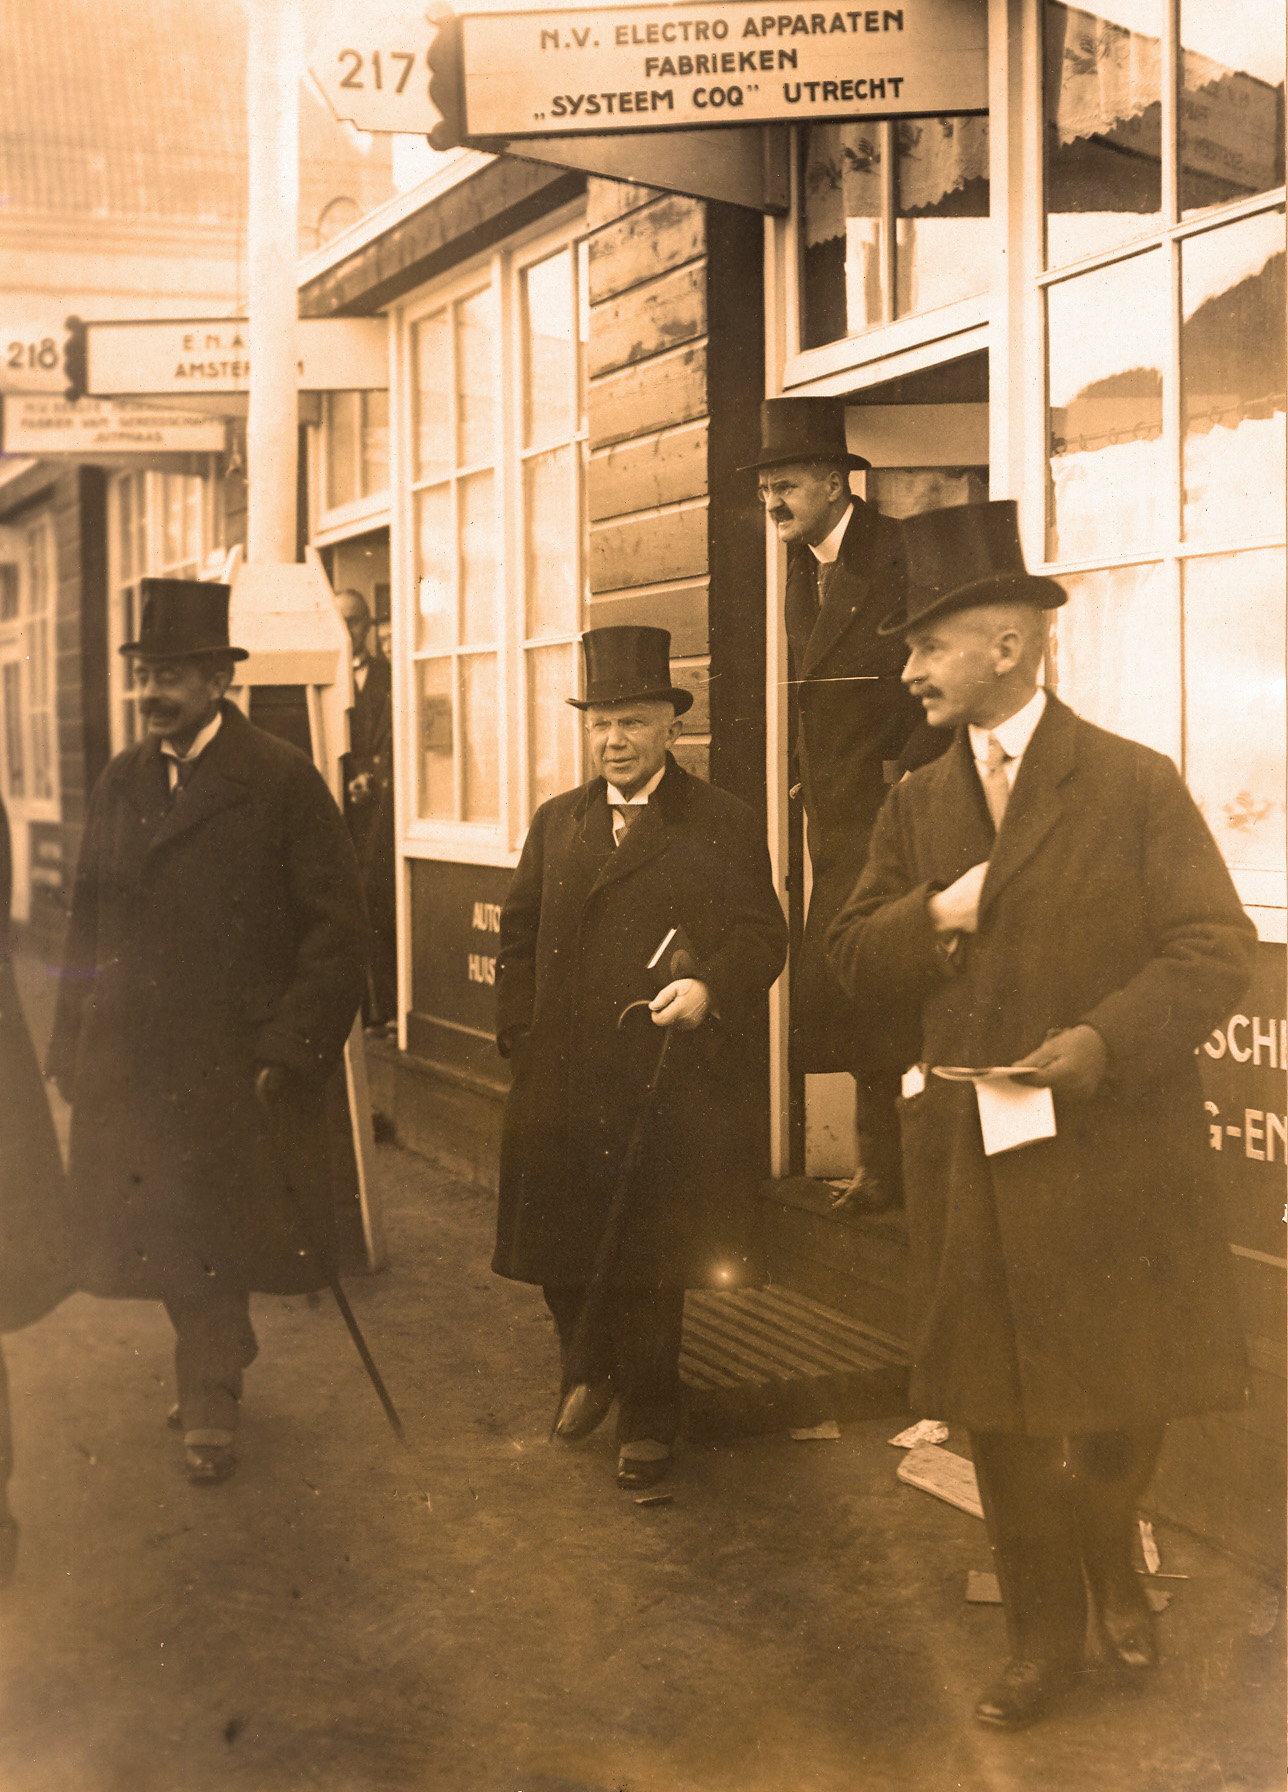 1920PrinsHendrik_bezoektJaarbeursUtrecht